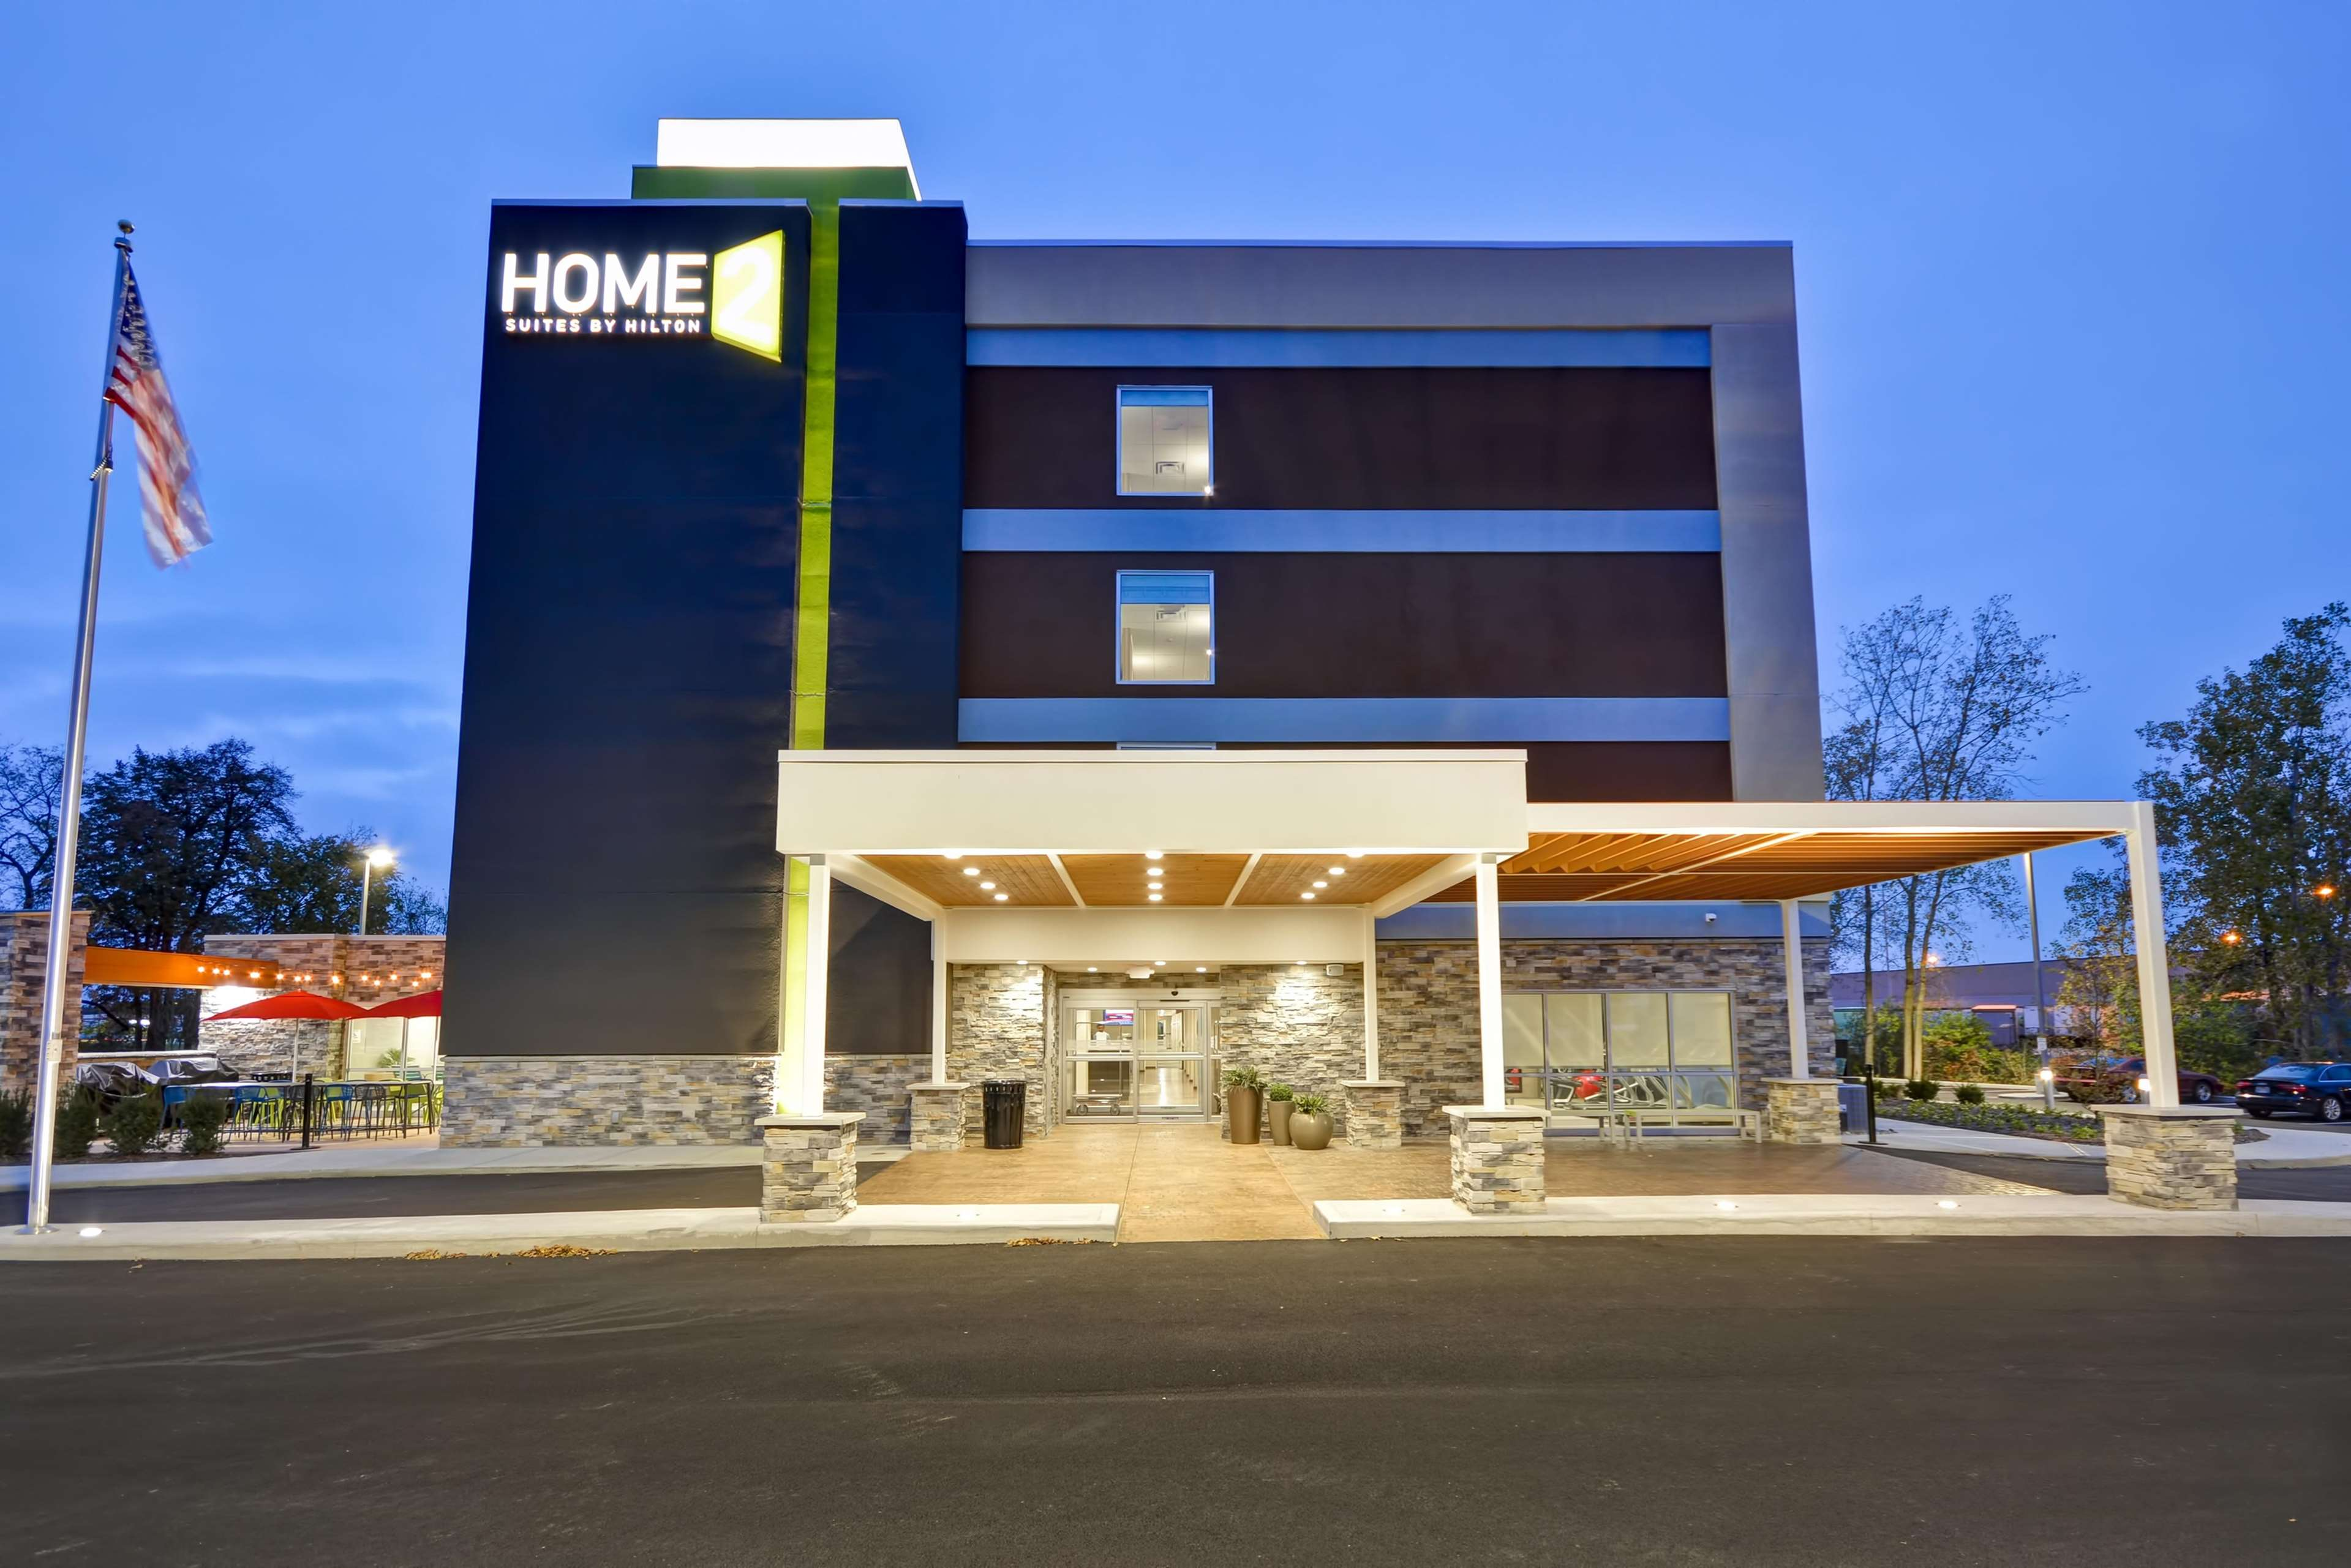 Home2 Suites By Hilton Maumee Toledo image 11